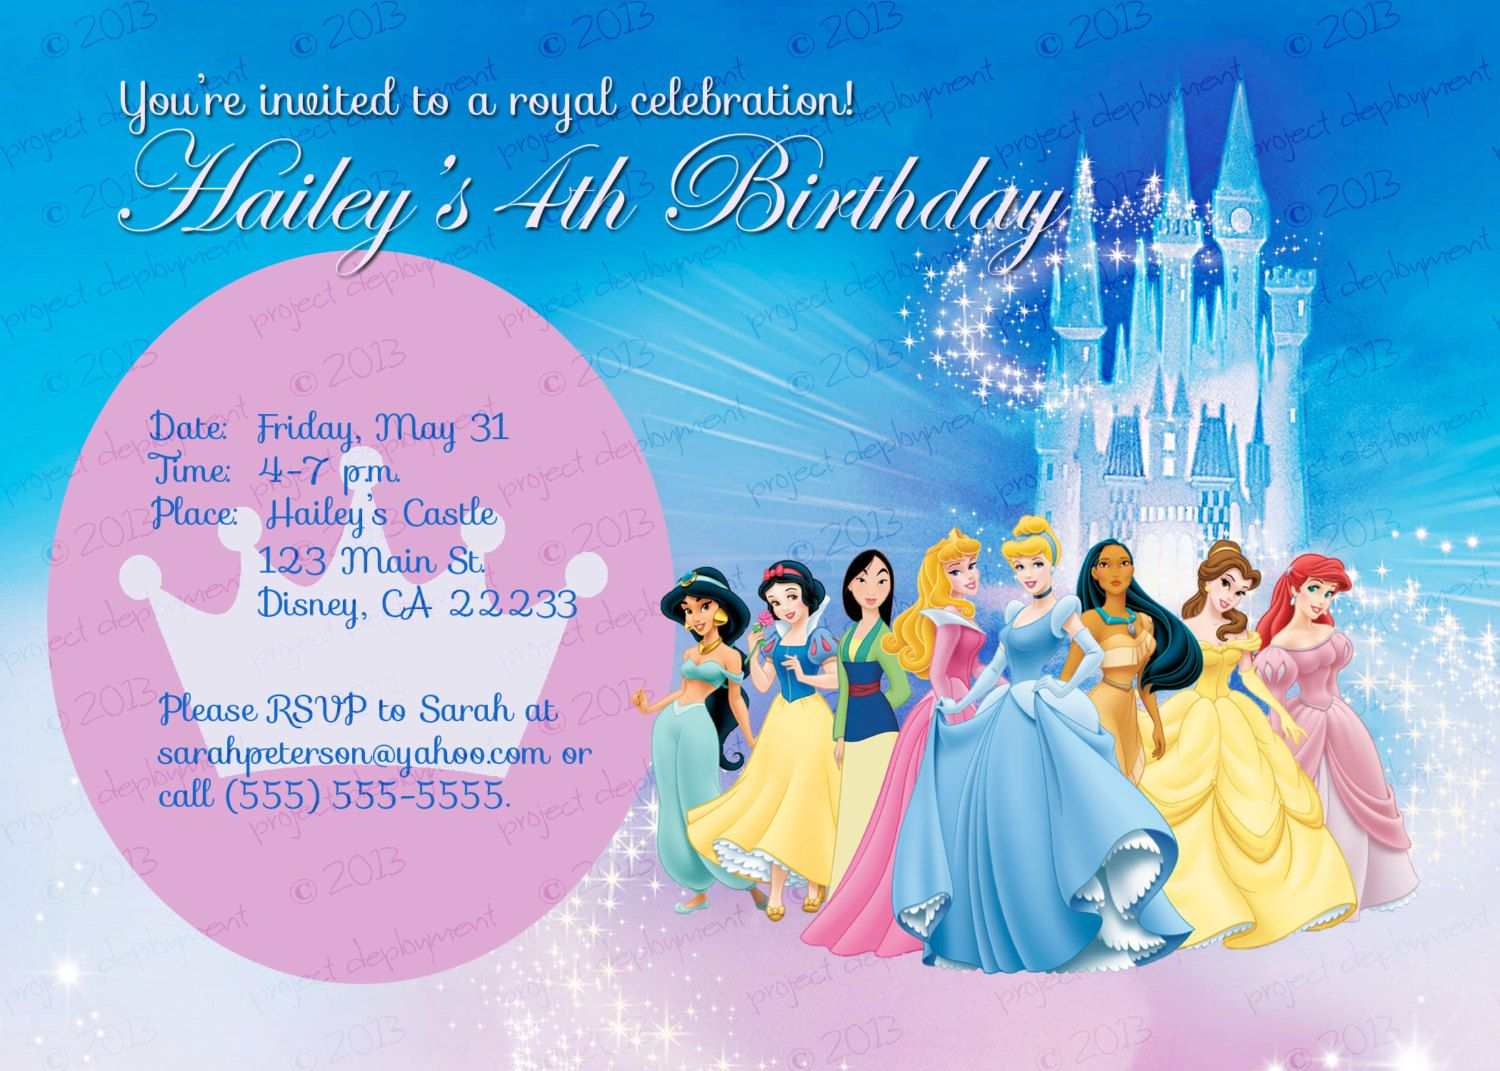 Custom Personalized Disney Princess Birthday Invitation 800 – Personalized Disney Birthday Invitations